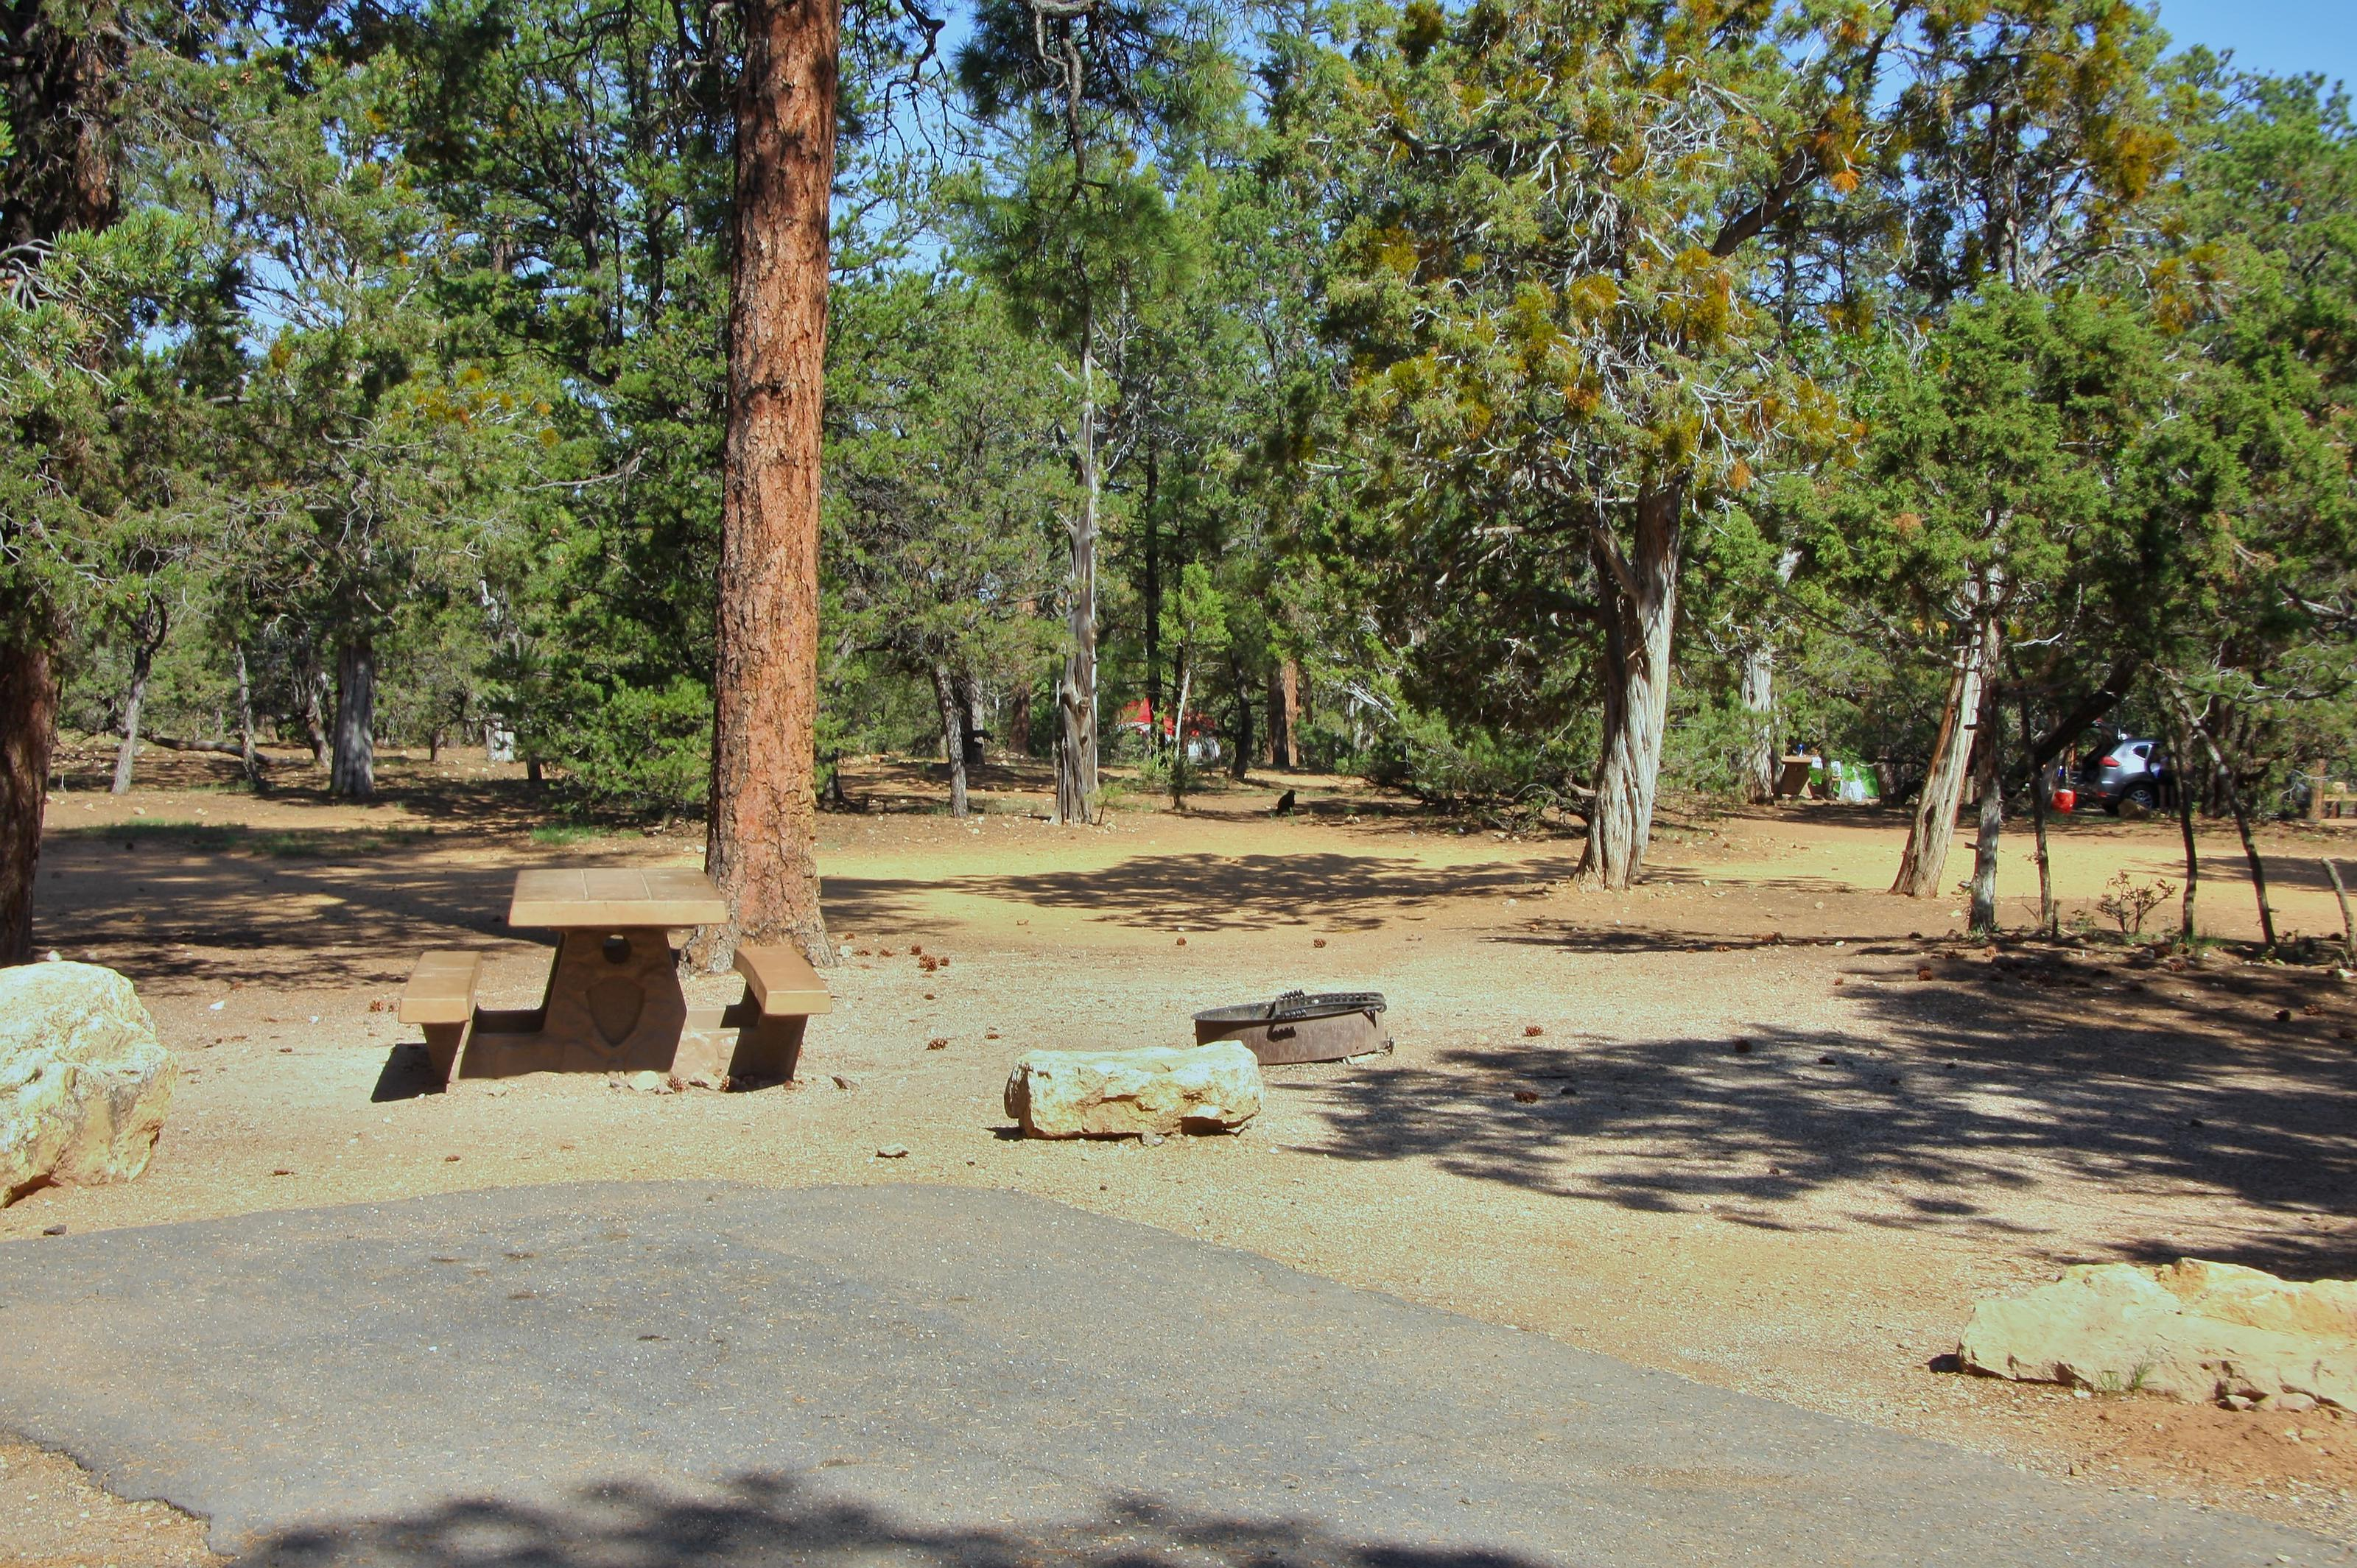 Picnic table, fire pit, and park spot, Mather CampgroundPicnic table, fire pit, and park spot for Oak Loop 248, Mather Campground